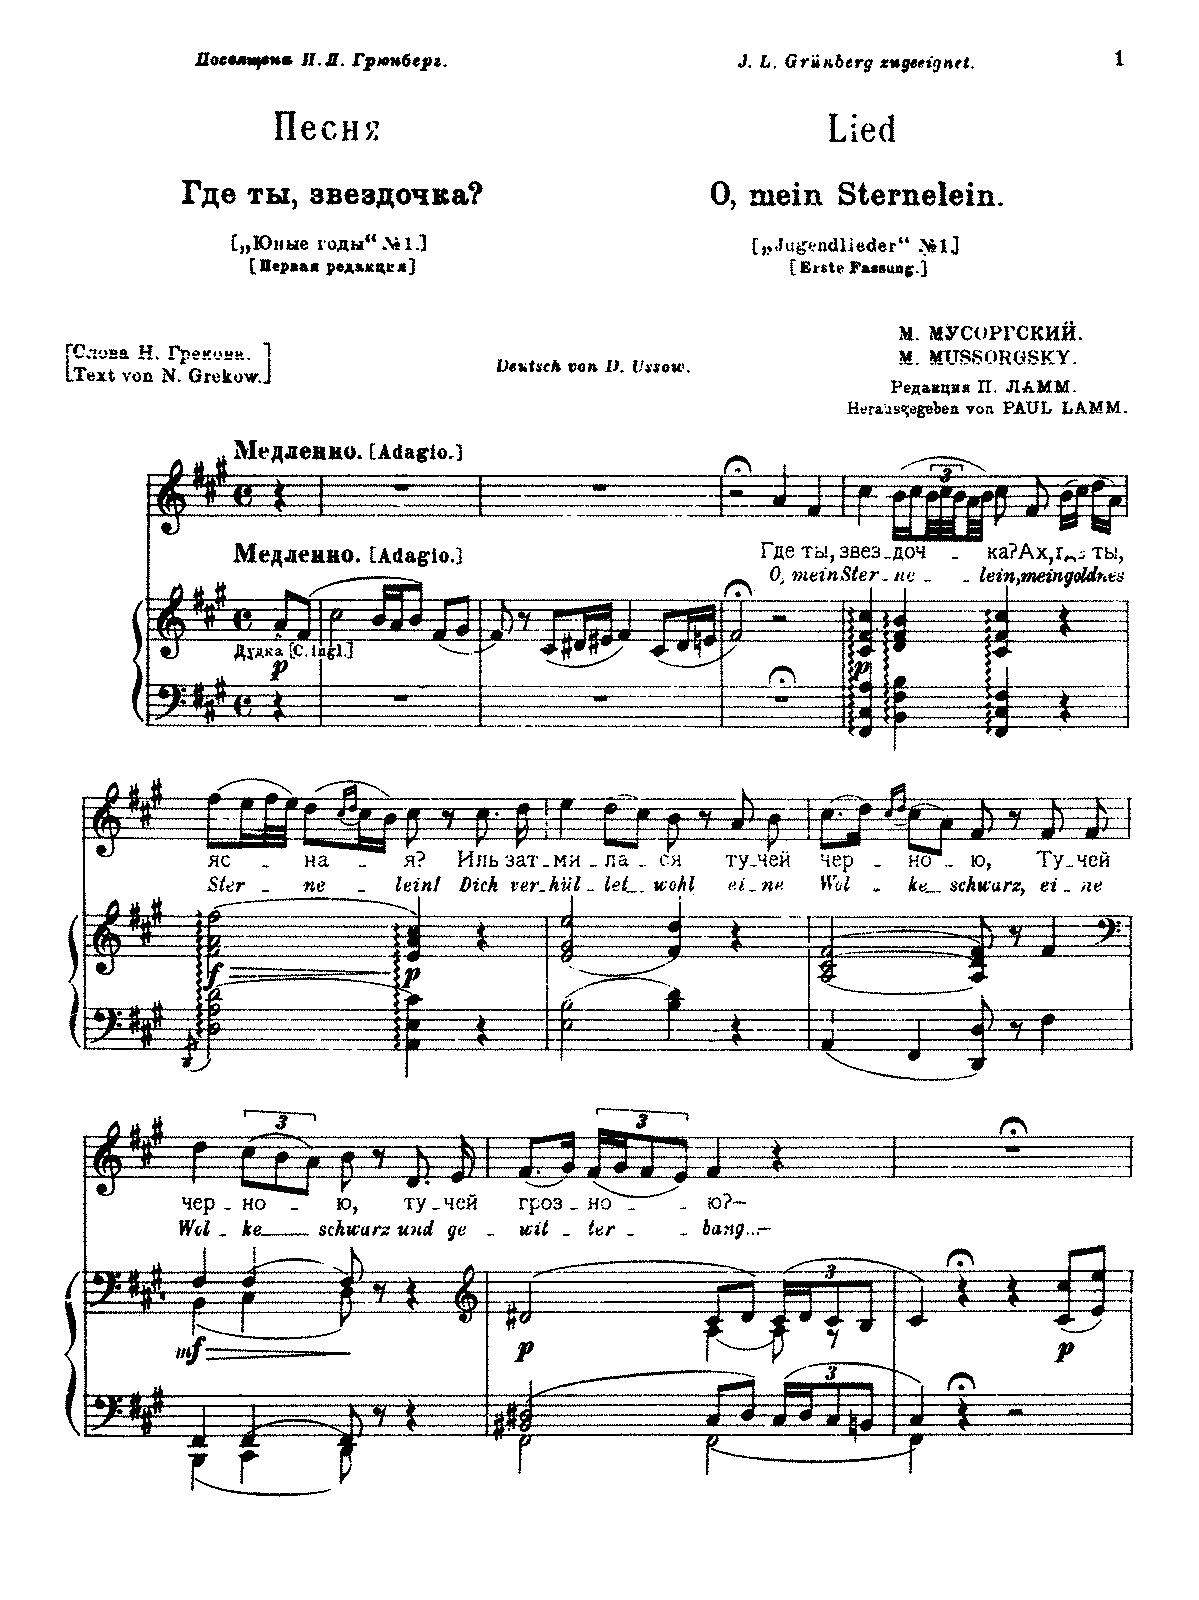 PMLP118774-Where Are You Little Star (1st version).pdf